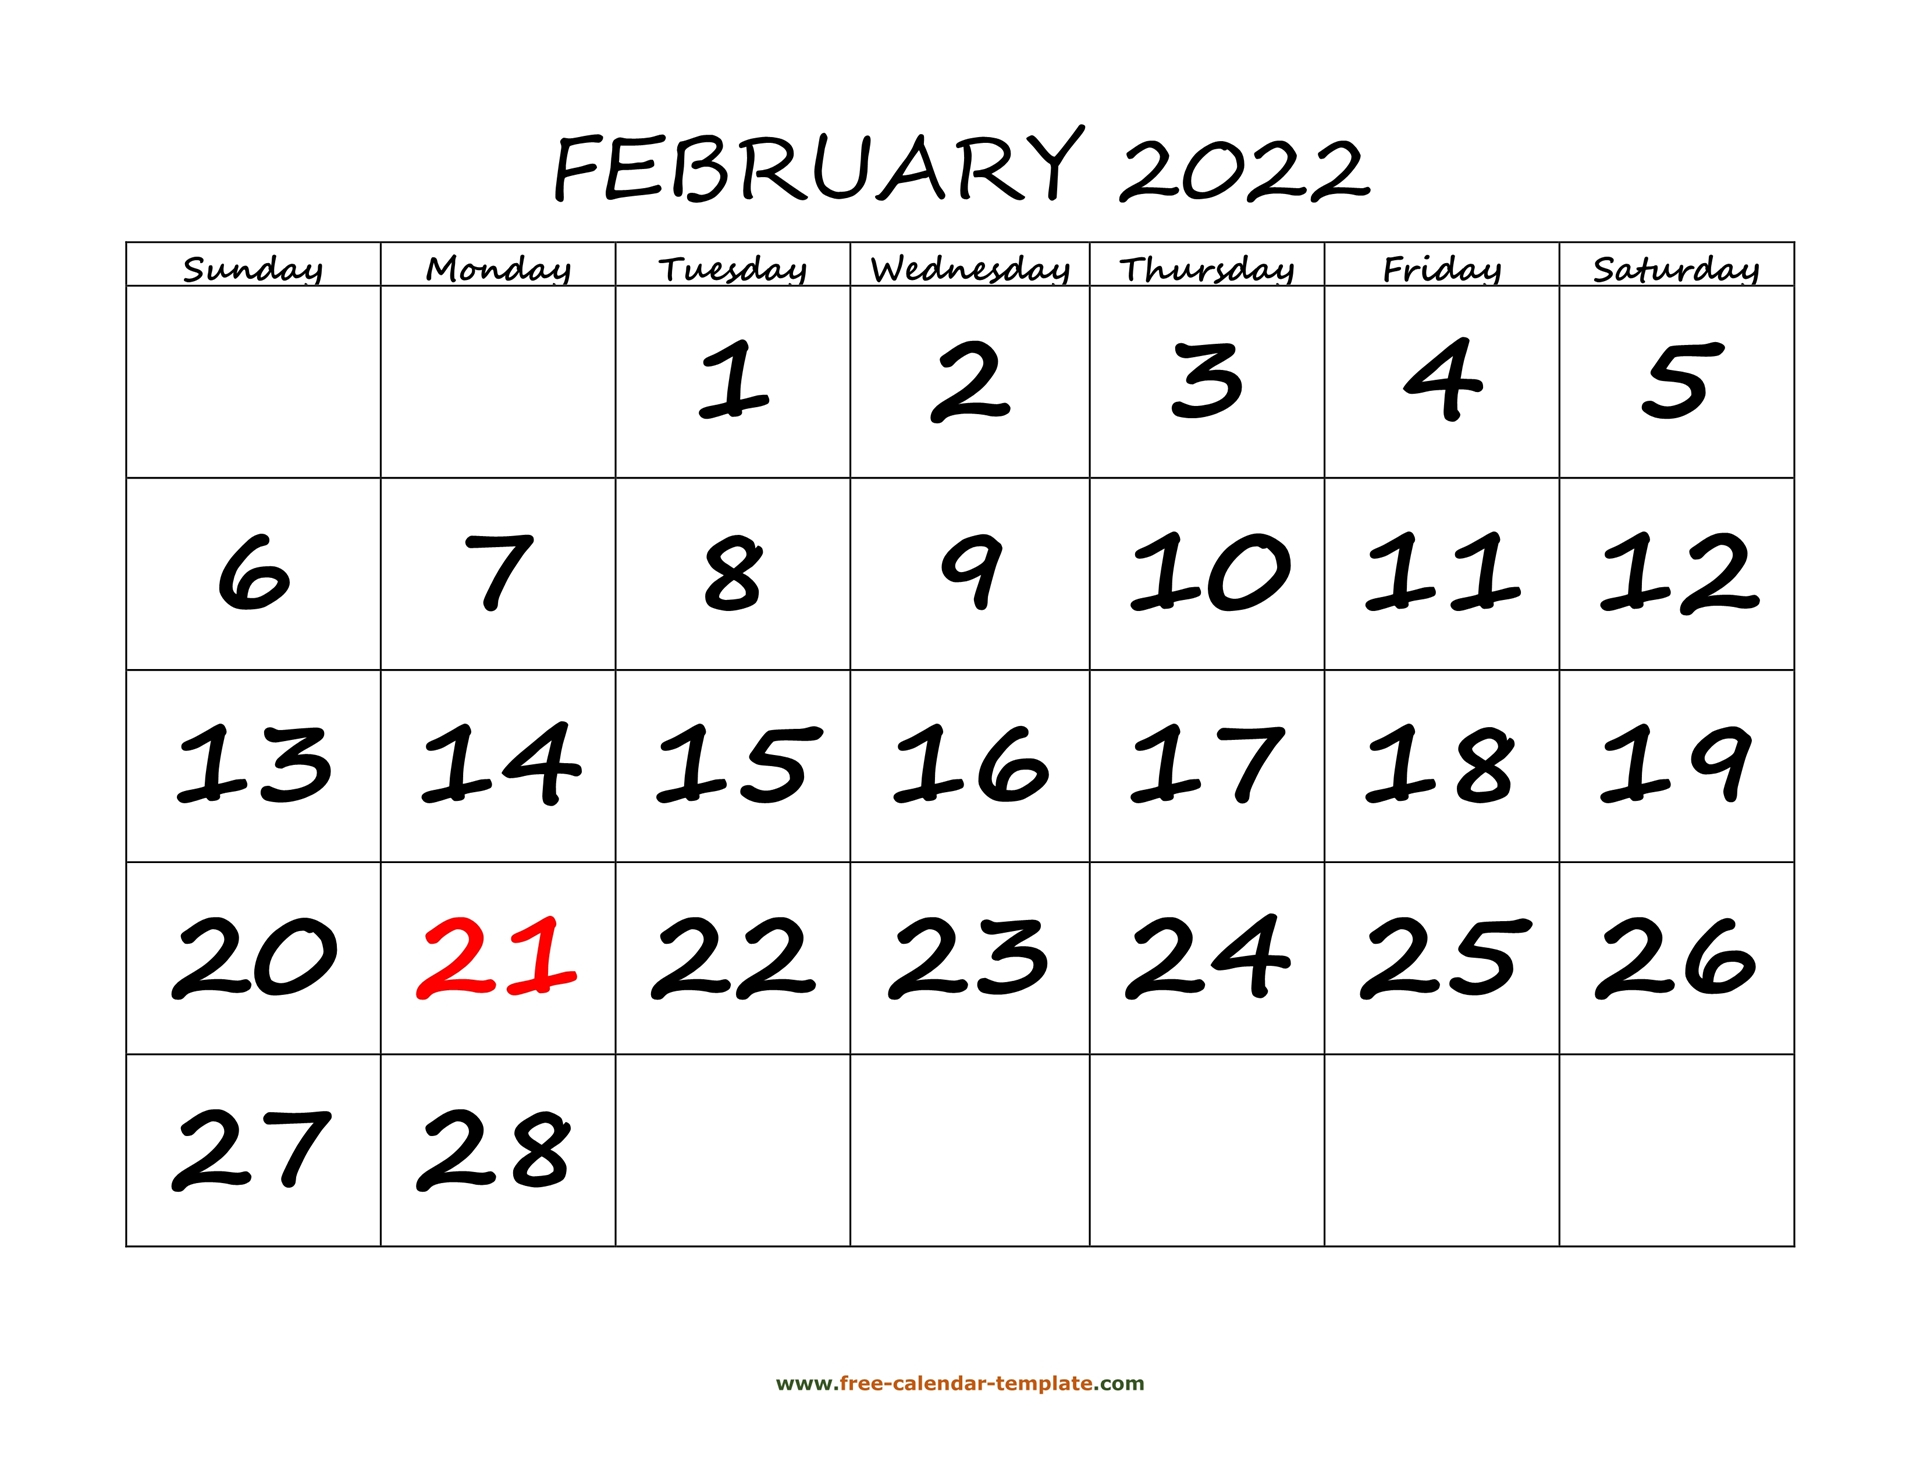 February 2022 Calendar Designed With Large Font With Regard To Blank Calendar For February 2022